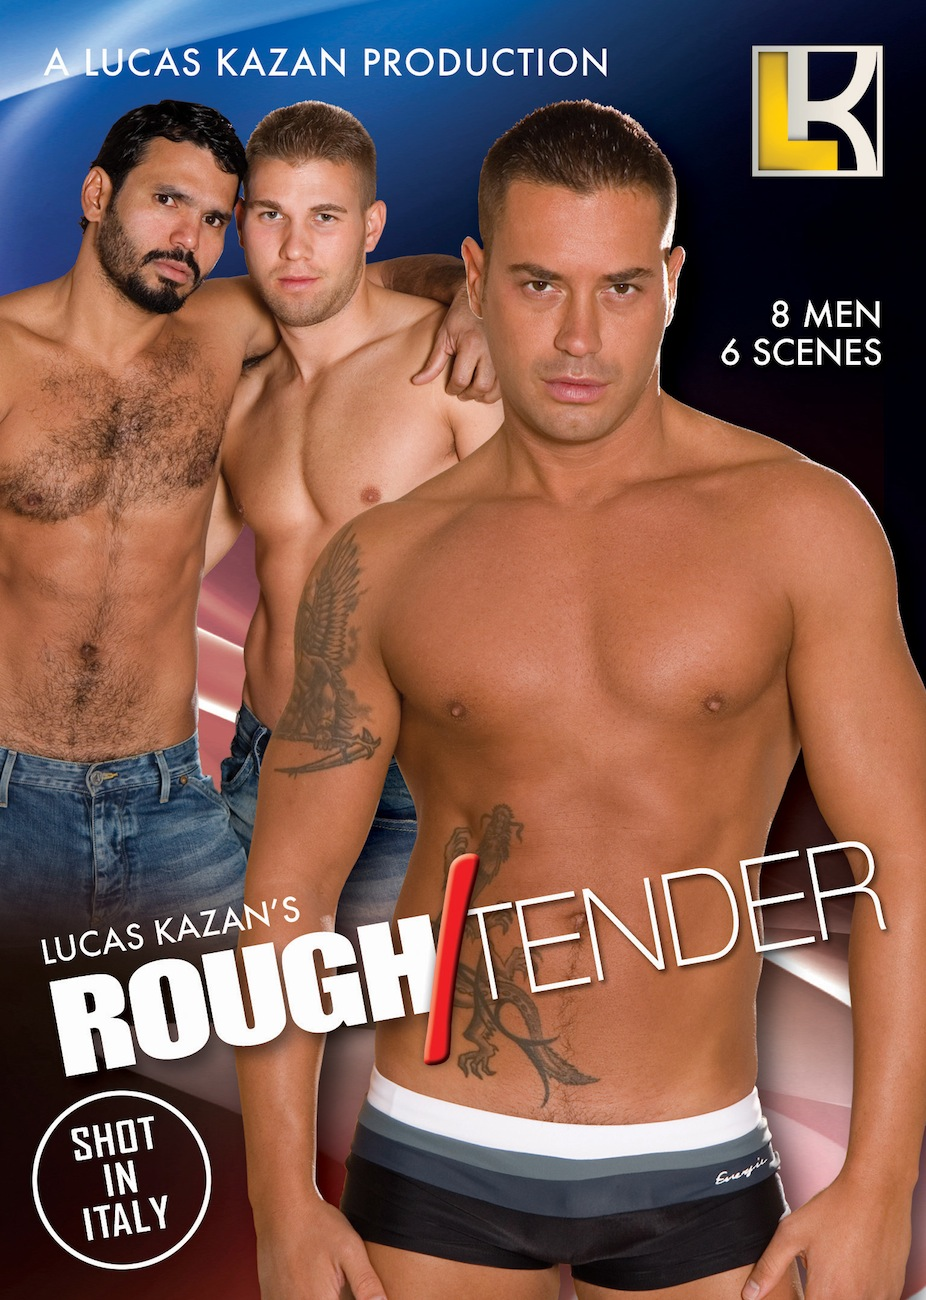 Rough Tender Cover copy